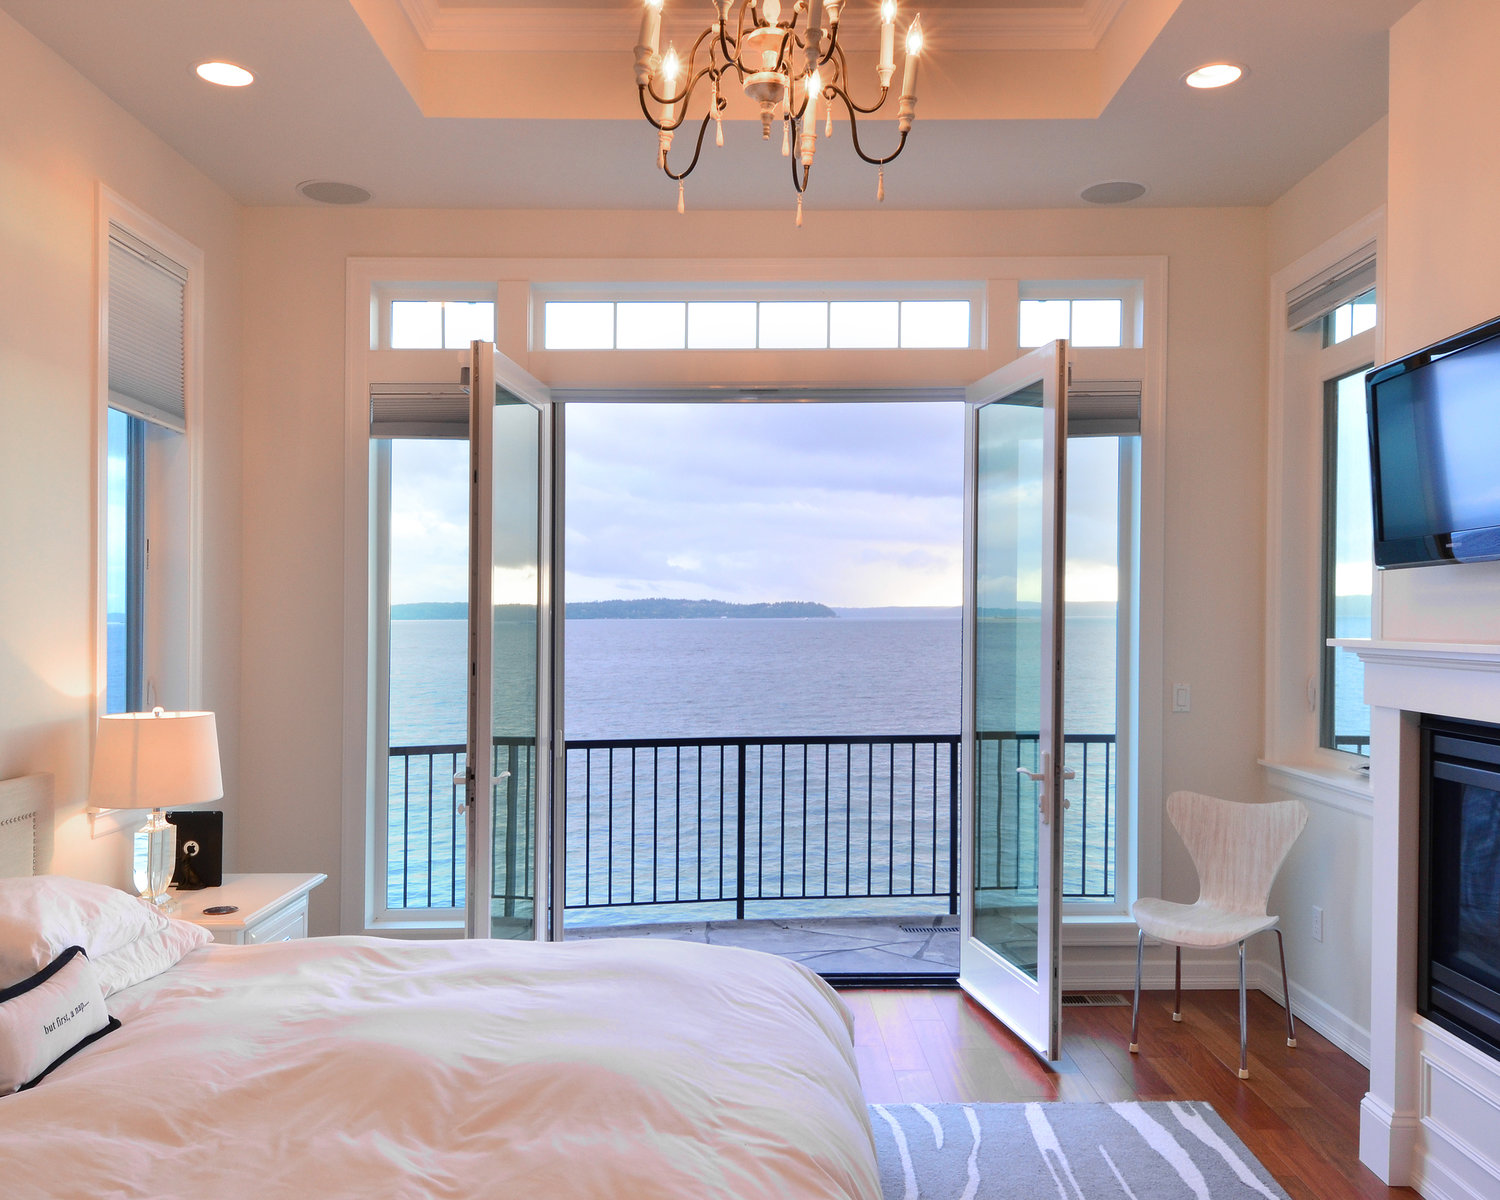 2013 Homes — Remodeled Homes Tour